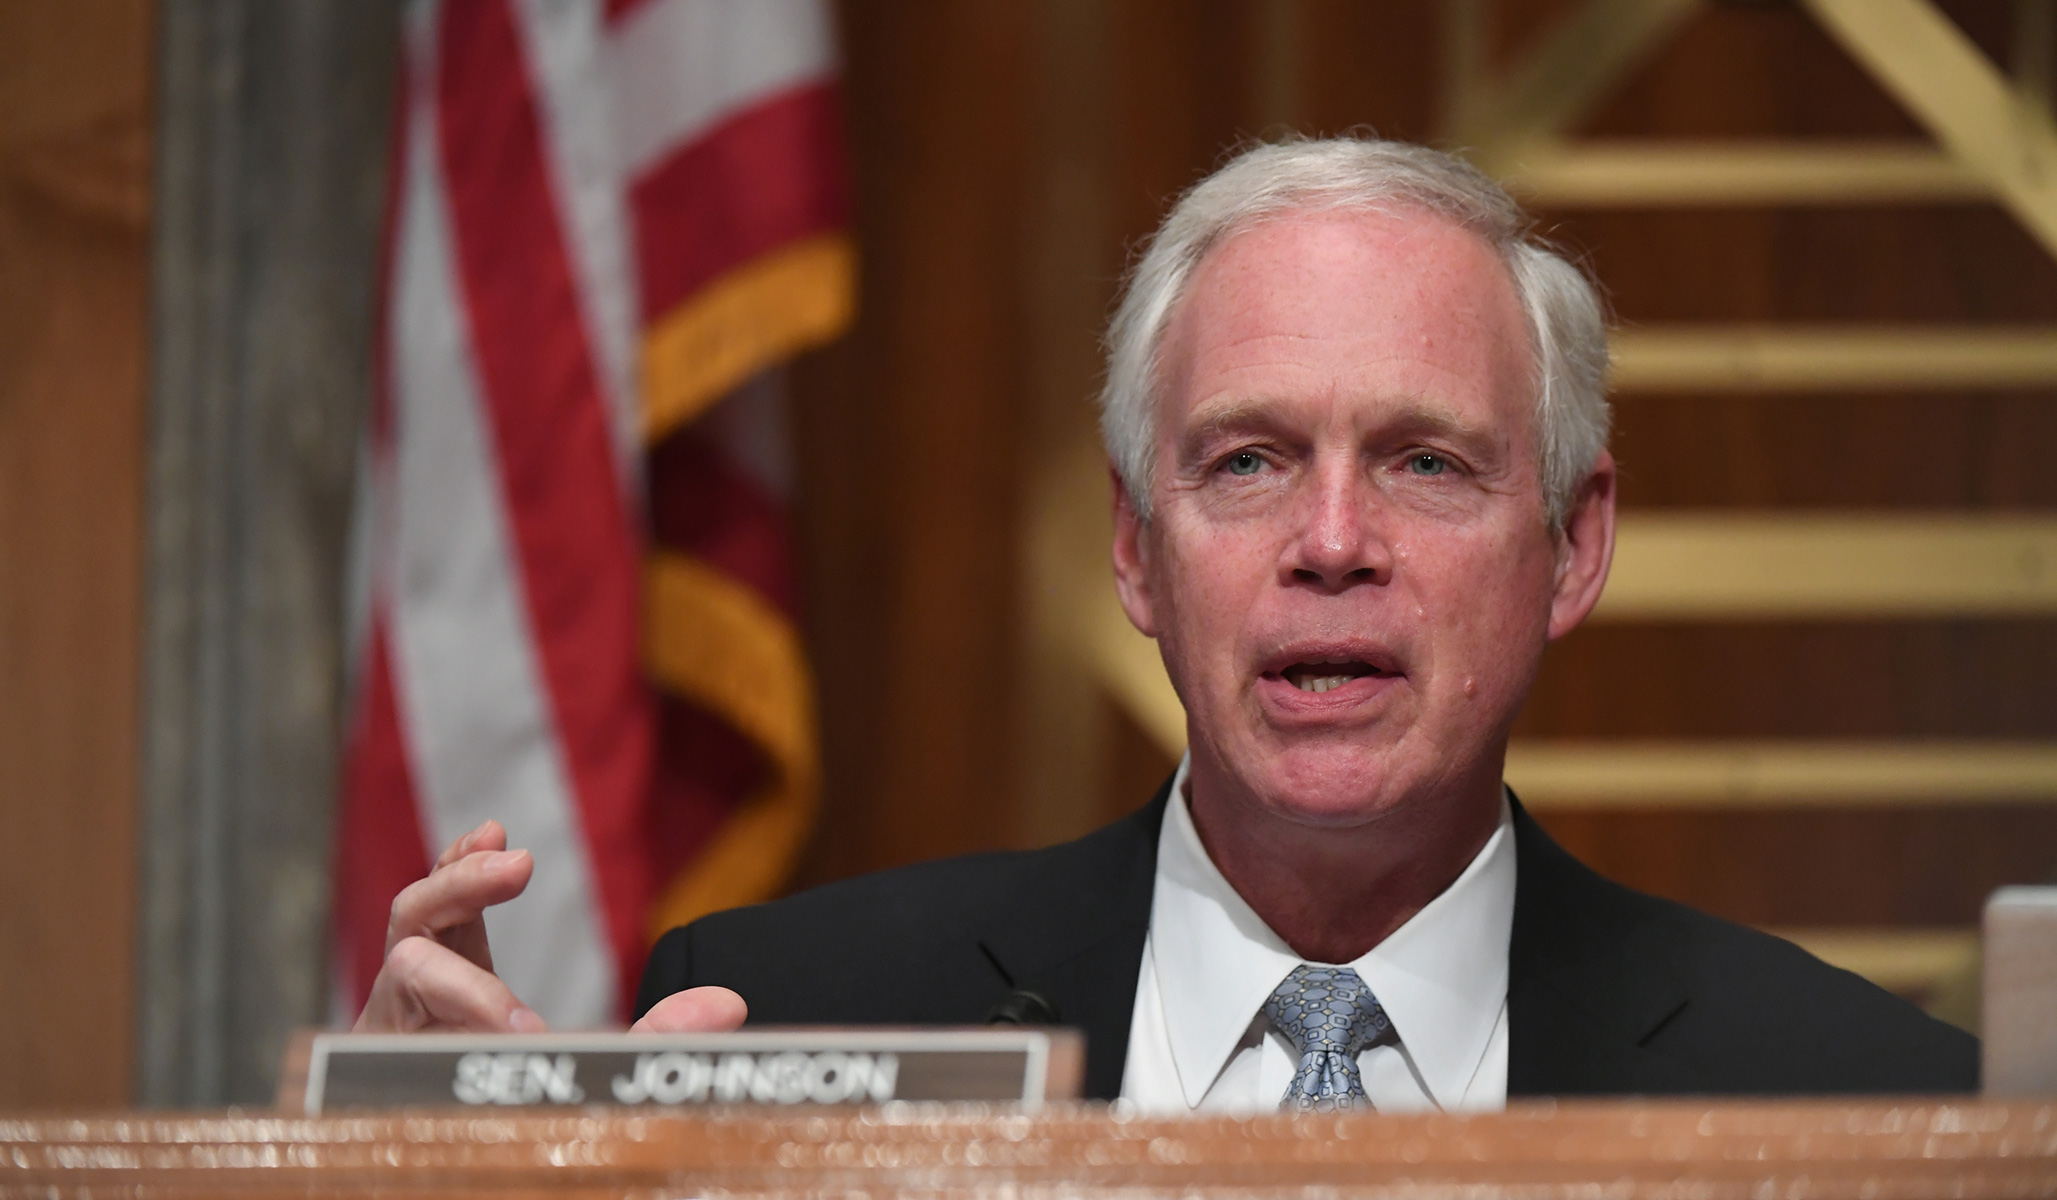 Ron Johnson Says GOP Senators on Homeland Security Committee Blocking Subpoenas of Comey, Brennan; Committee Says Comments Were Based on a Misunderstanding thumbnail